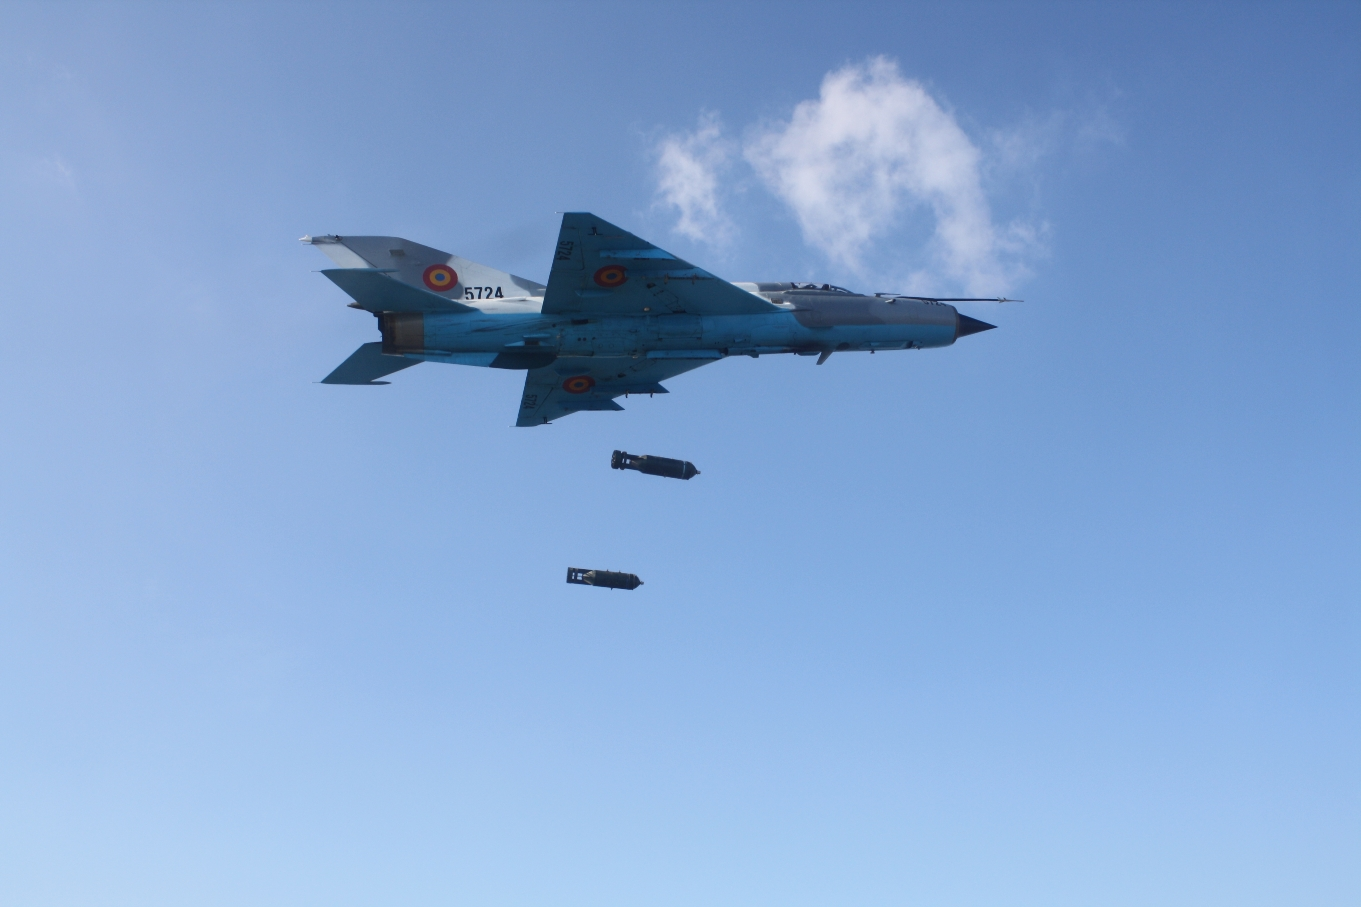 File:MiG-21 Lancer C dropping bombs.jpg - Wikimedia Commons